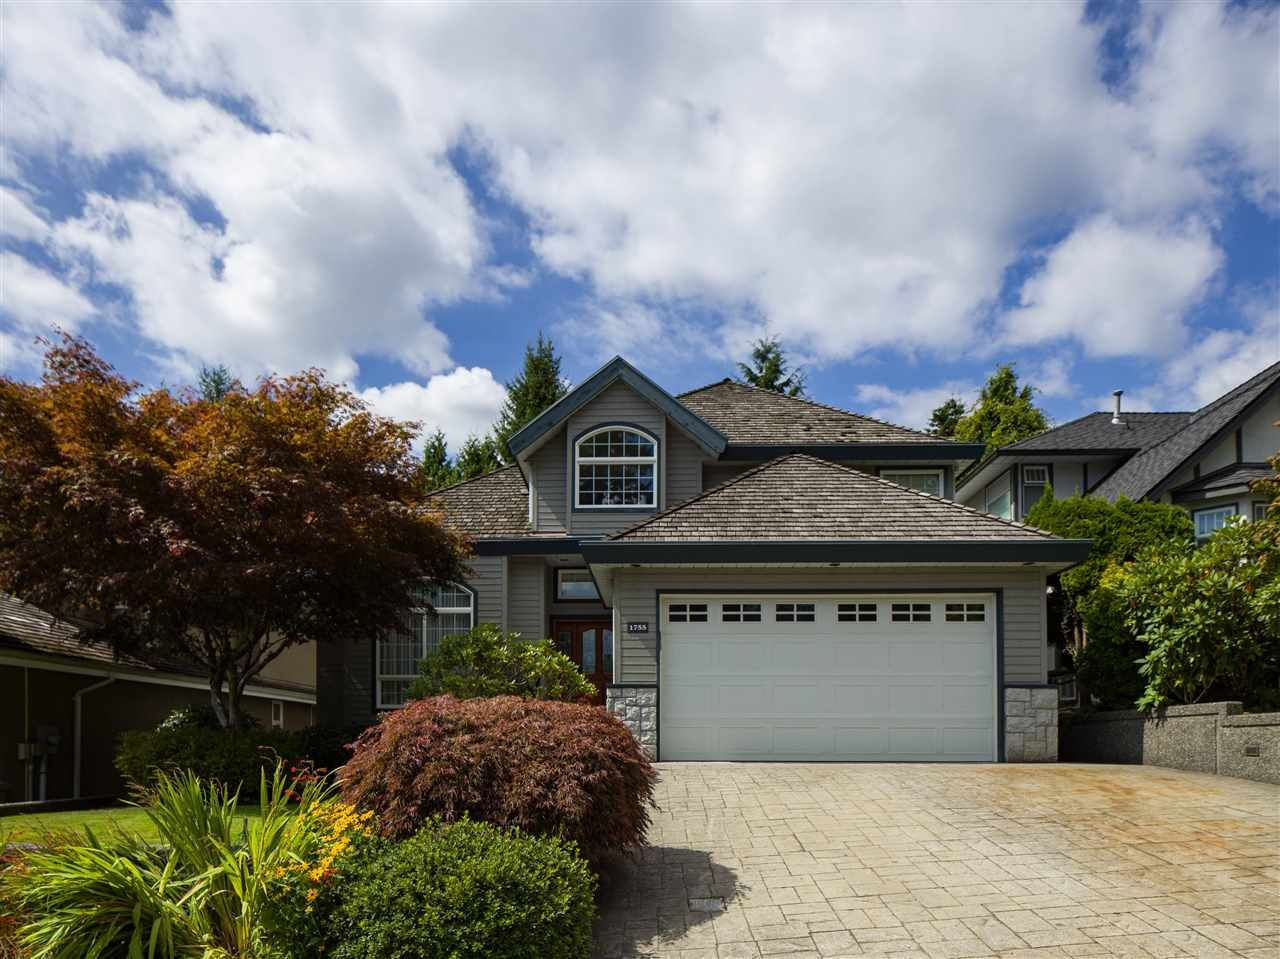 Main Photo: 1755 ORKNEY Place in North Vancouver: Northlands House for sale : MLS®# R2504108